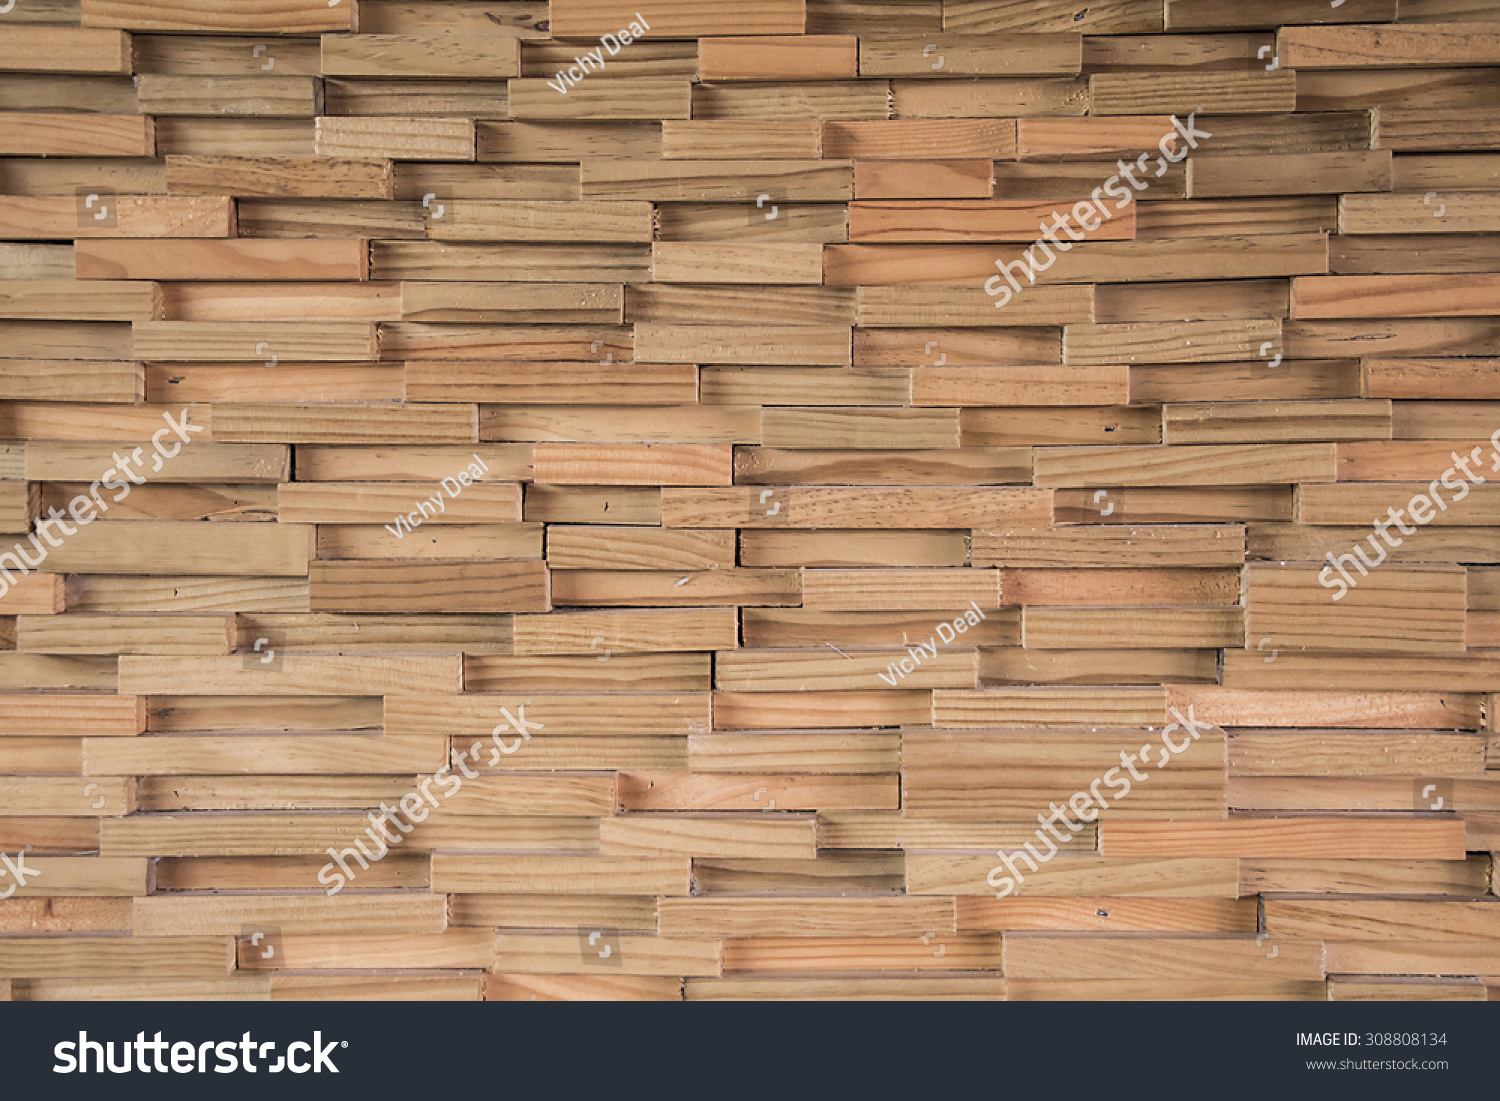 Wood Block Wall Royaltyfree Wood Block Wall Texture Background 308808134 Stock